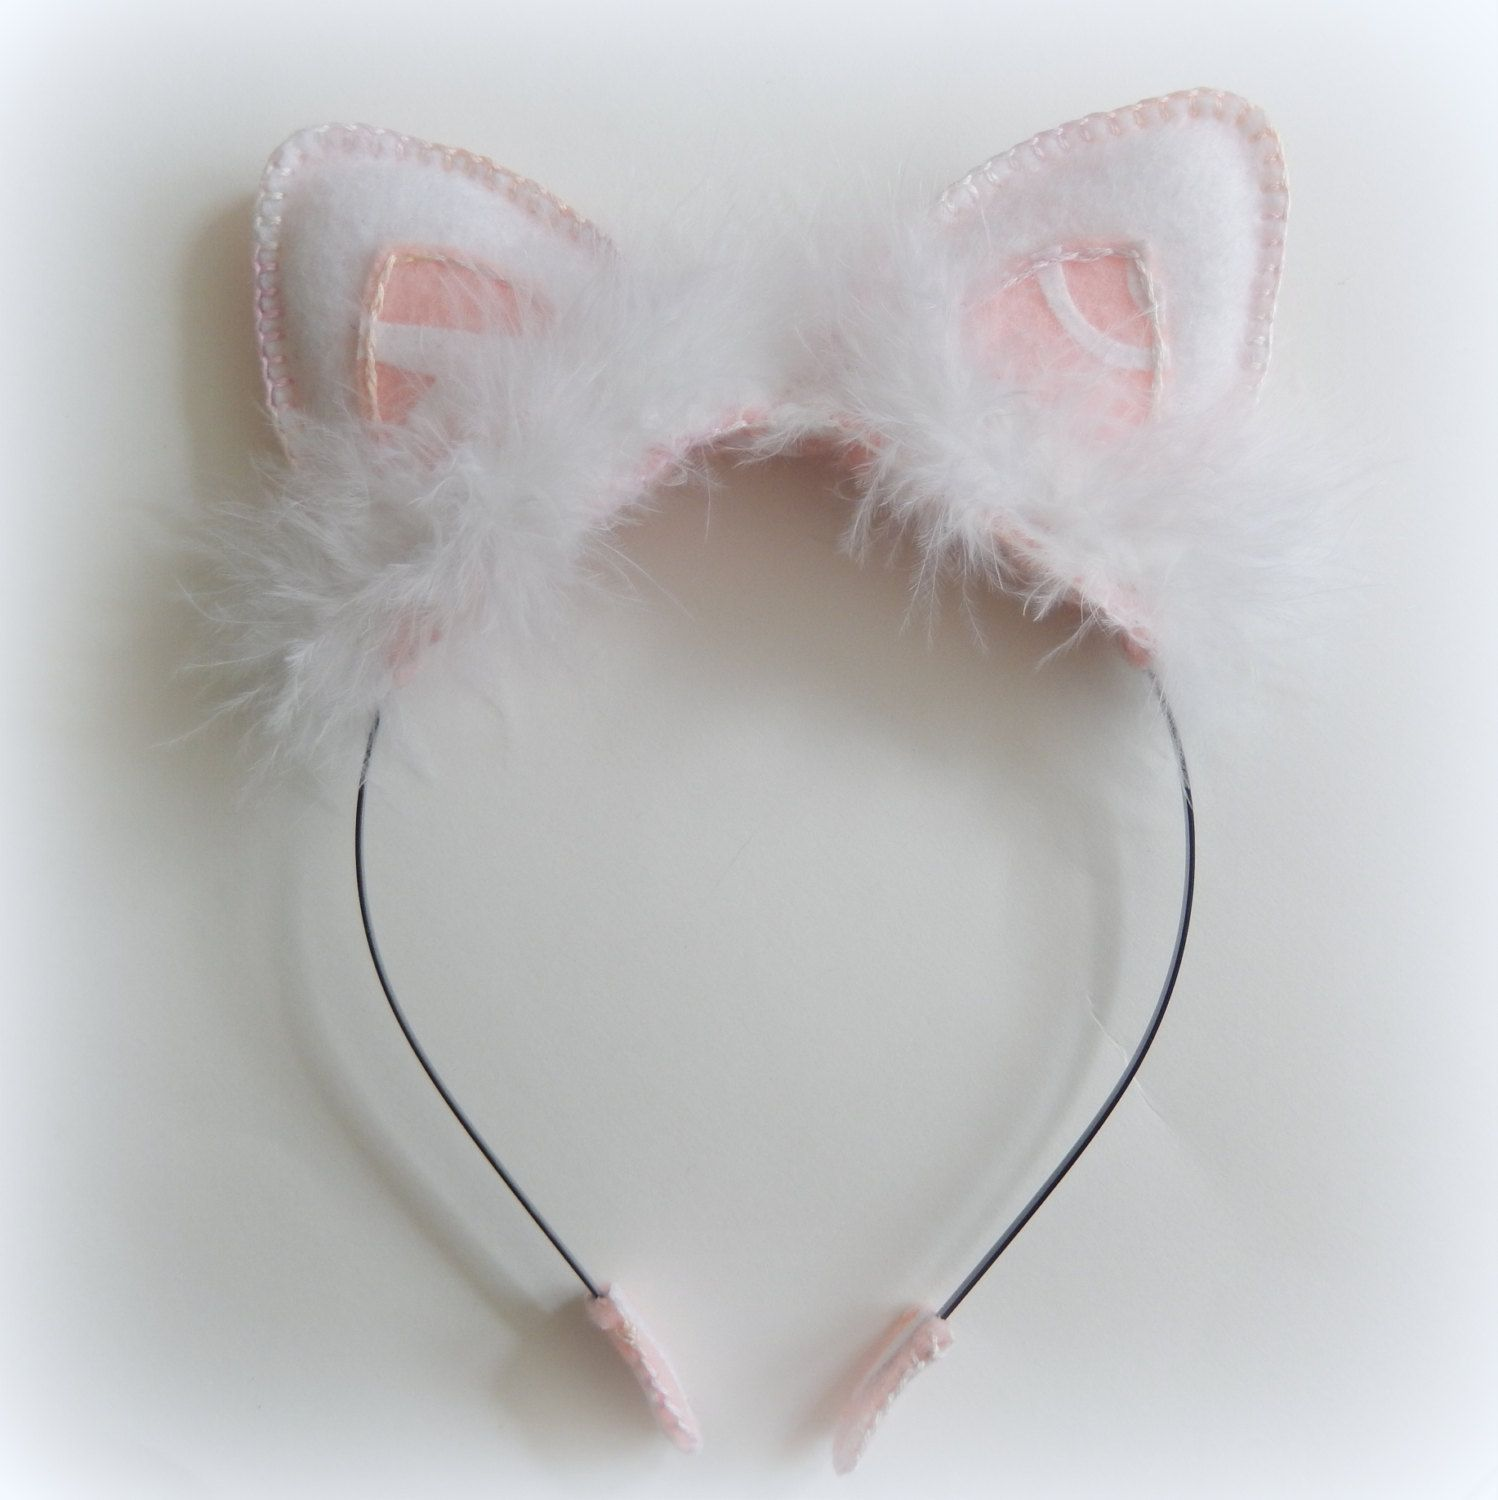 Ballerina Kitty Cat Pink and White Angel Costume by happygonoggin, $25.00